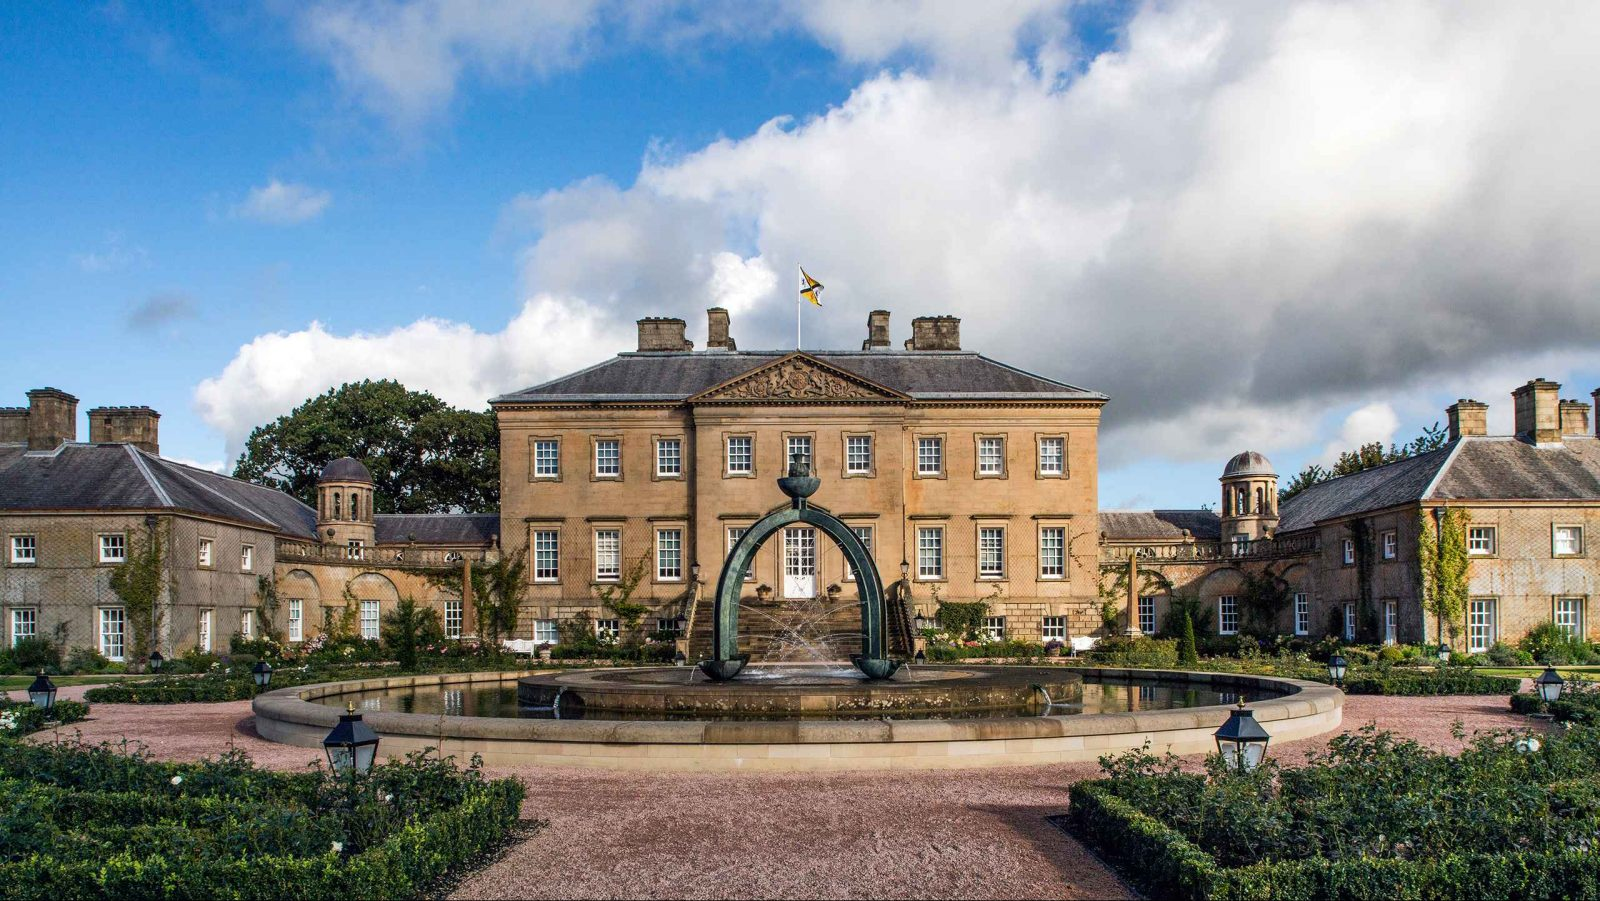 Scotland Corporate Travel Meetings - Dumfries House, Cumnock, Scotland